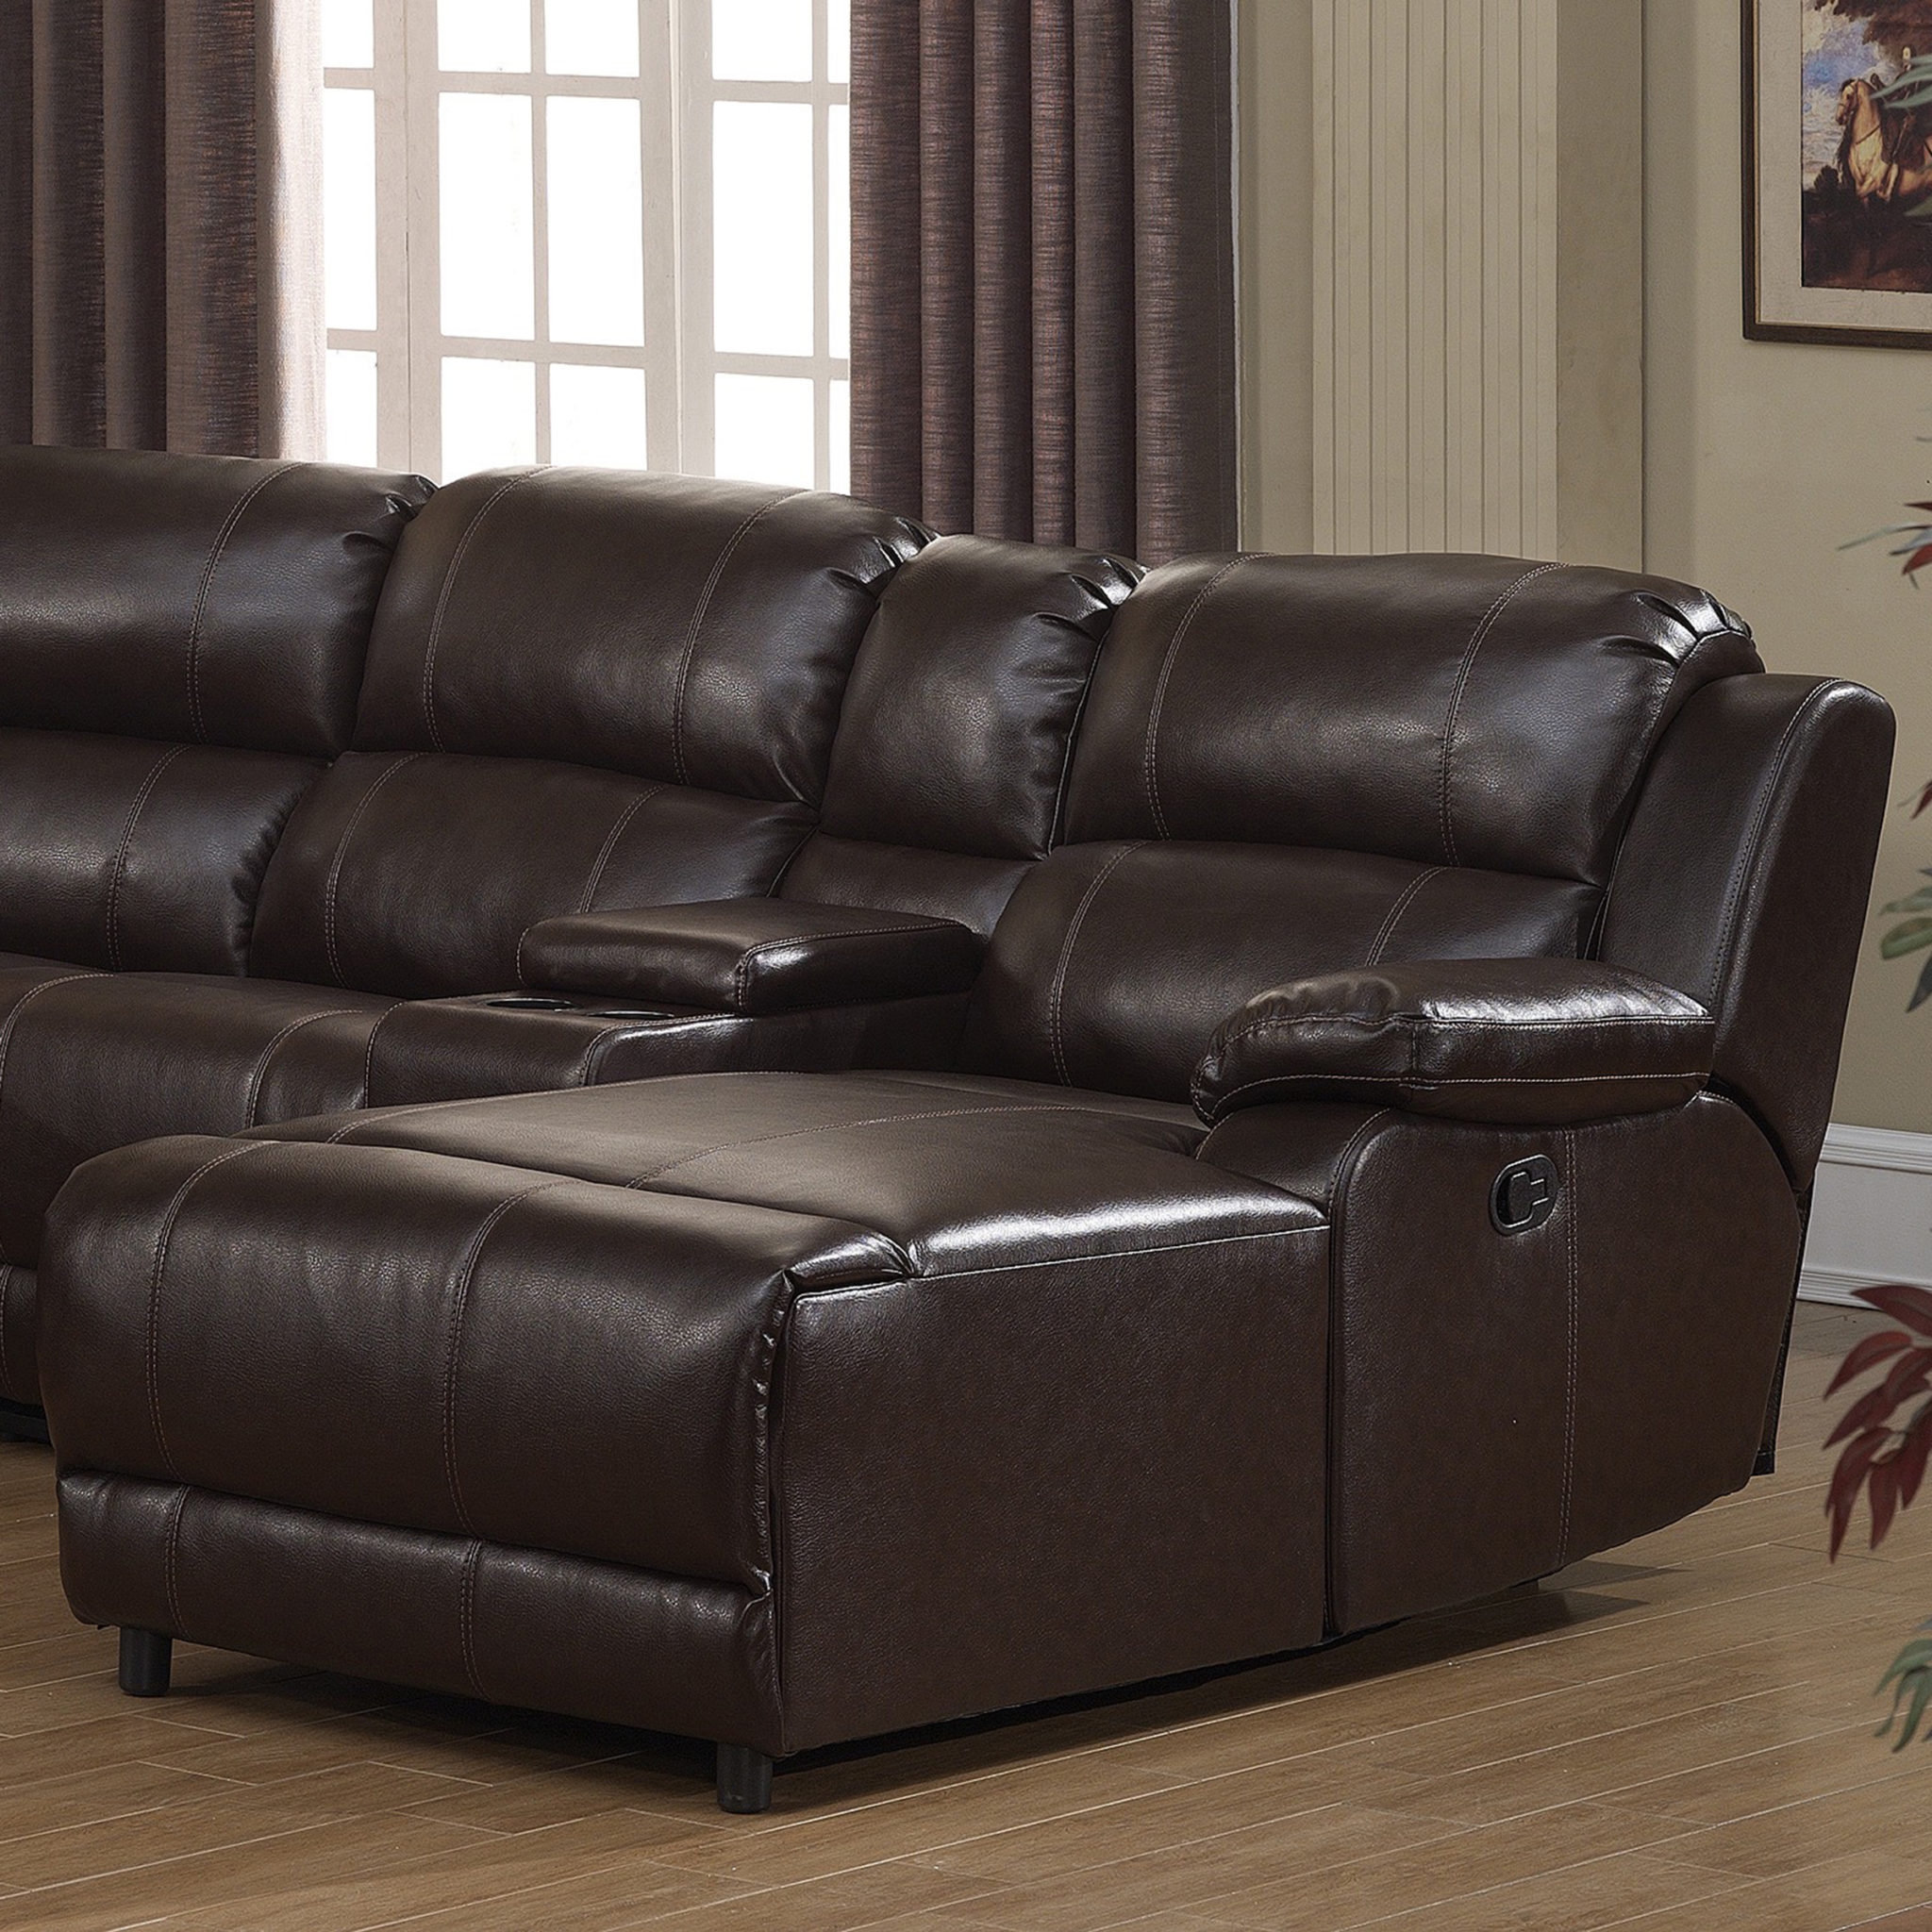 reclining back item ashley chaise signature press with by sectional products damacio leather design brown dark